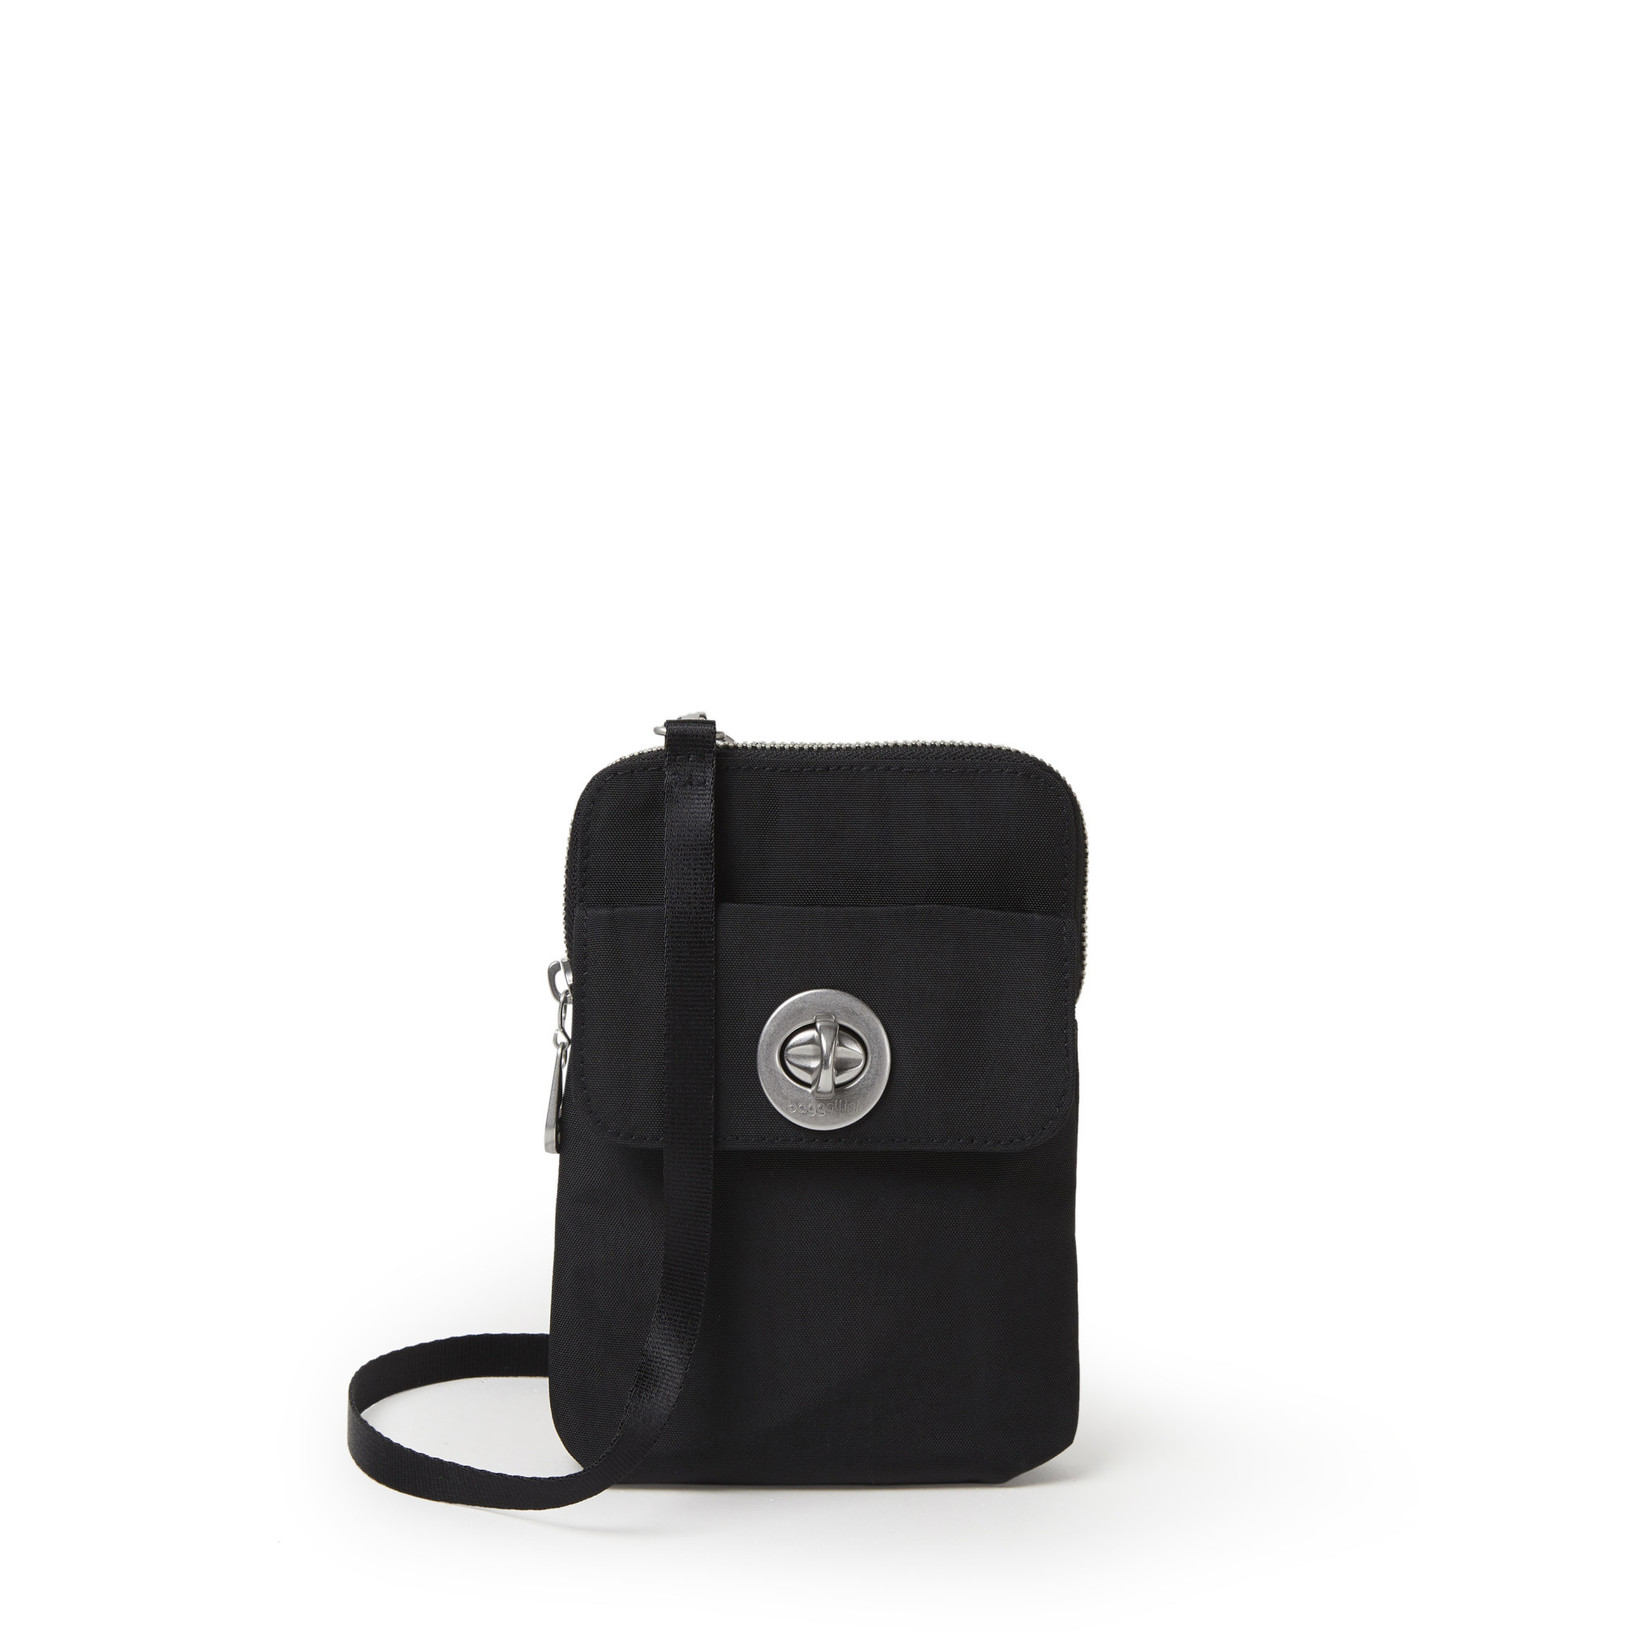 Baggallini Lima RFID Mini Bag - Black